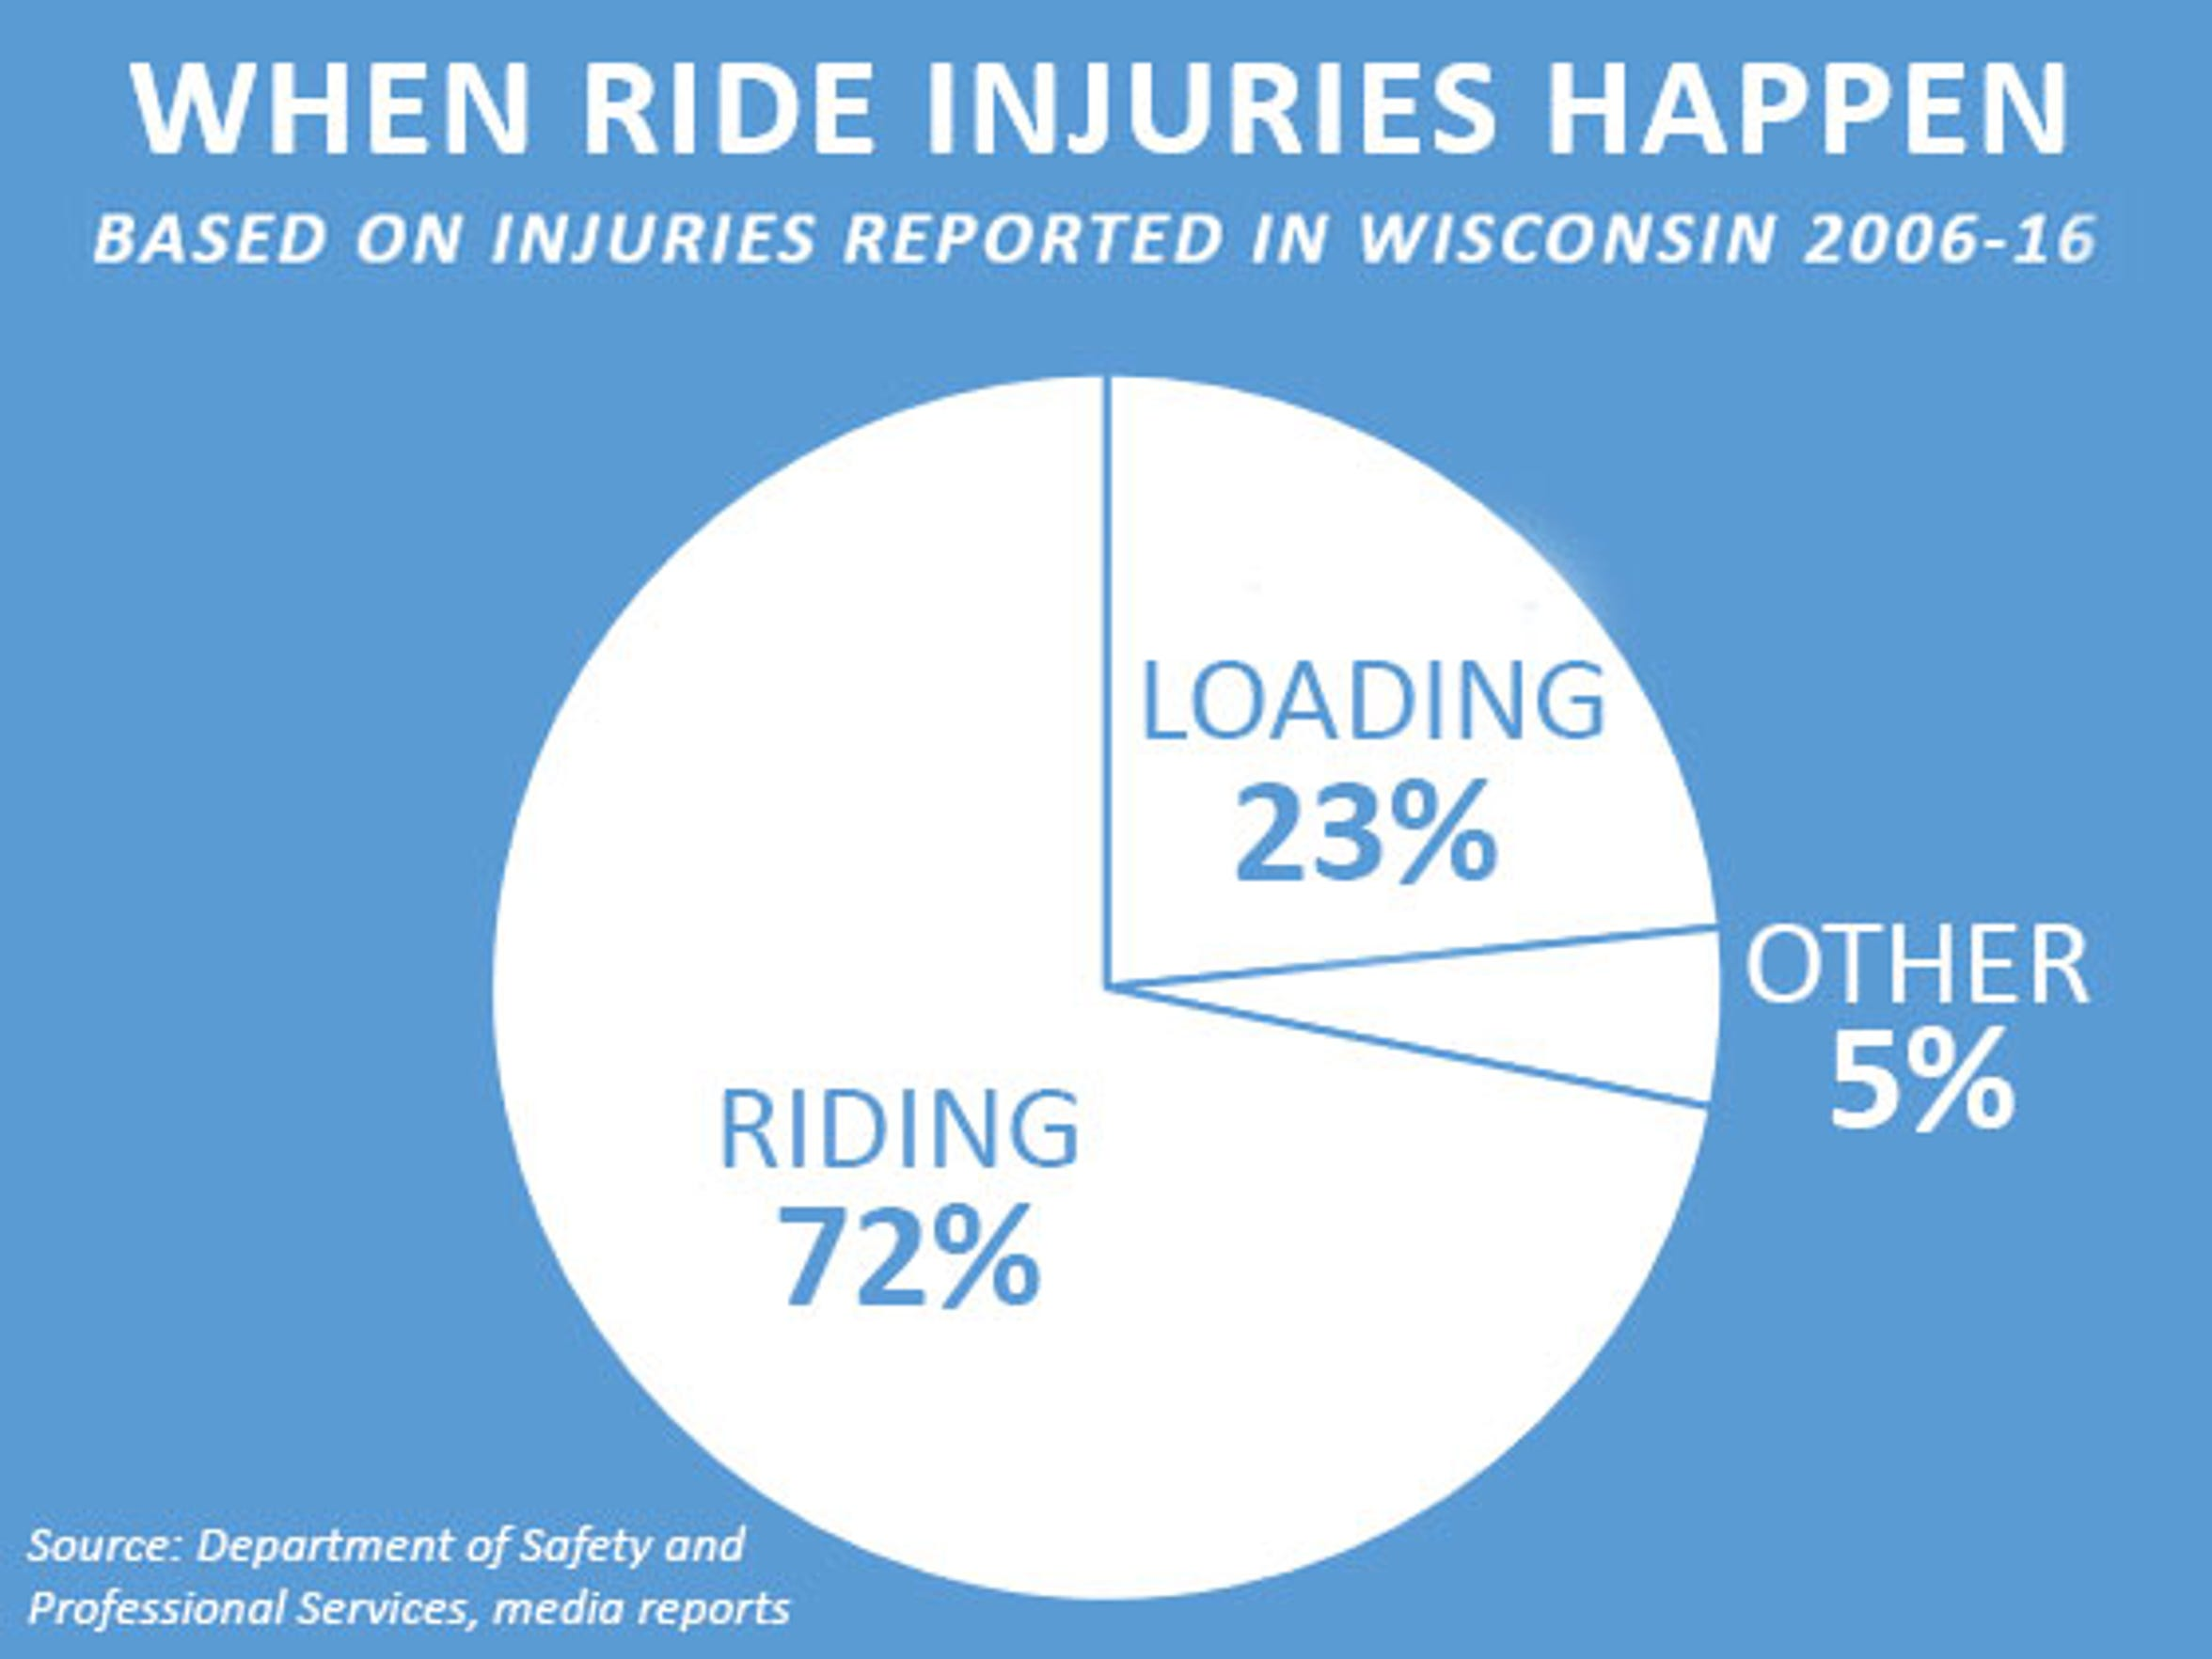 2 killed, 75 hurt on Wis  rides since '06